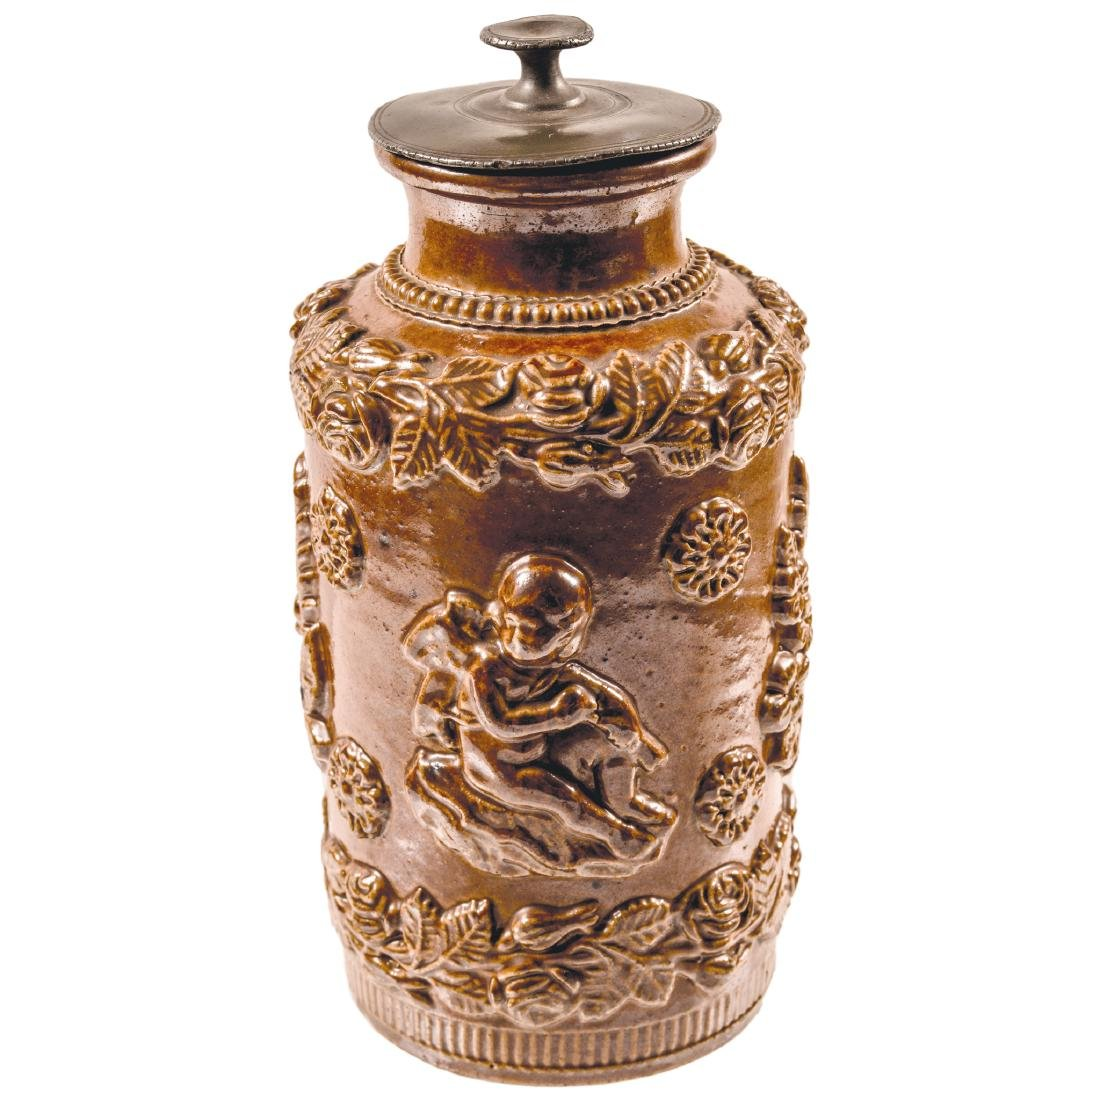 c. 1776 Rheinish Stoneware Tobacco Jar with its Pewter